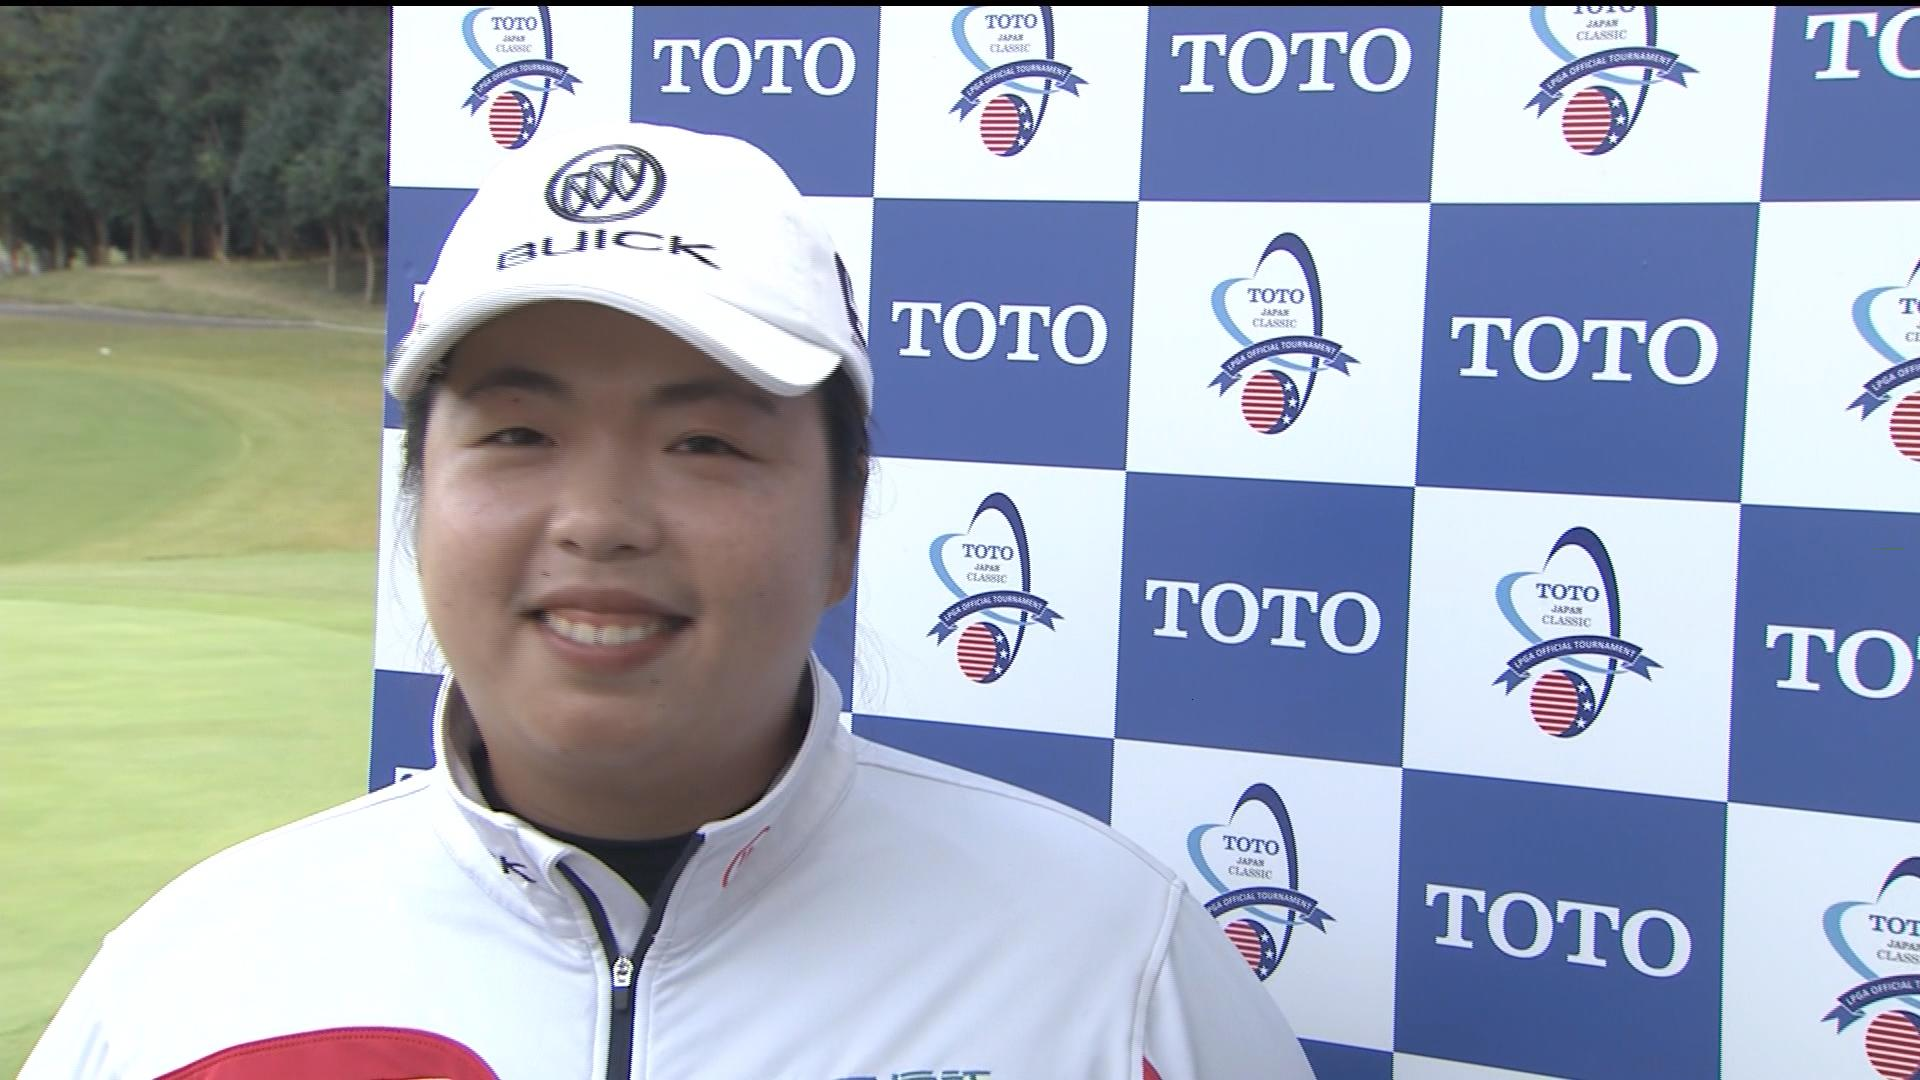 2016 TOTO Japan Classic: Shanshan Feng win sound | Golf Channel